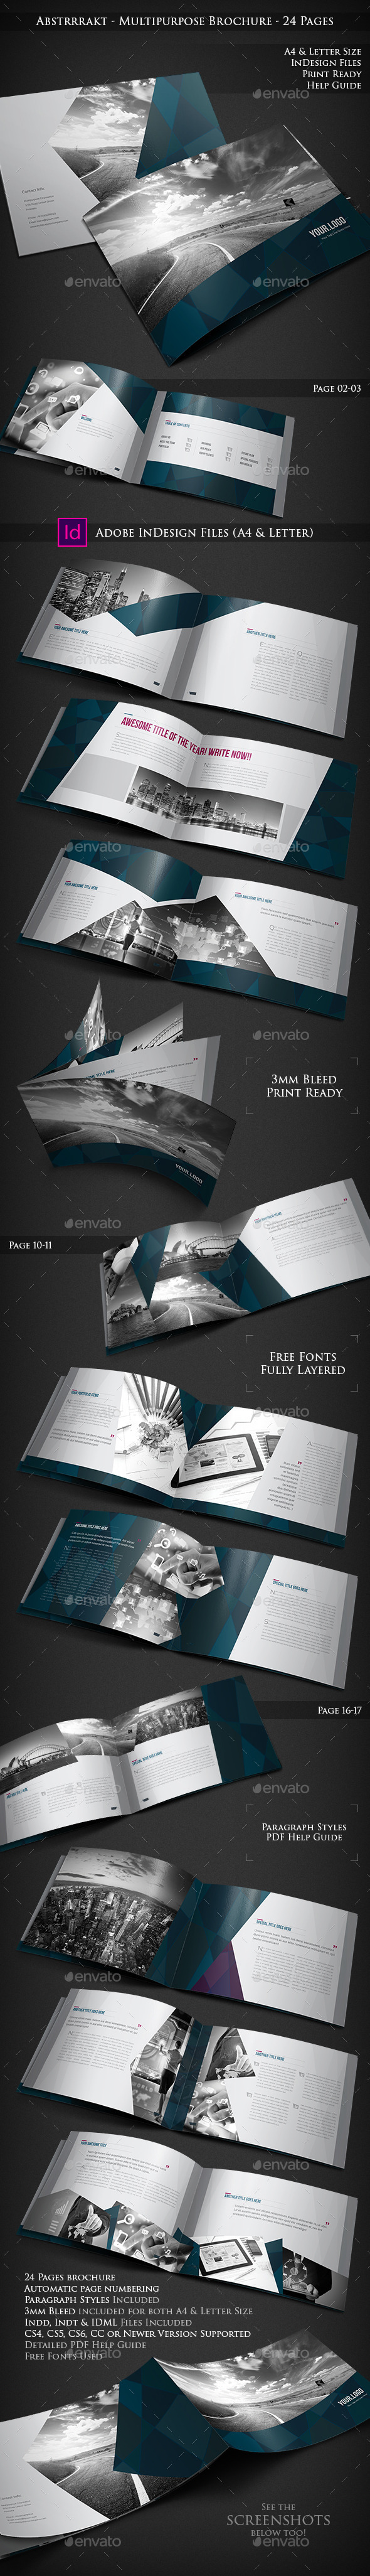 GraphicRiver Abstrrrakt Multipurpose Brochure 24 Pages 9855213